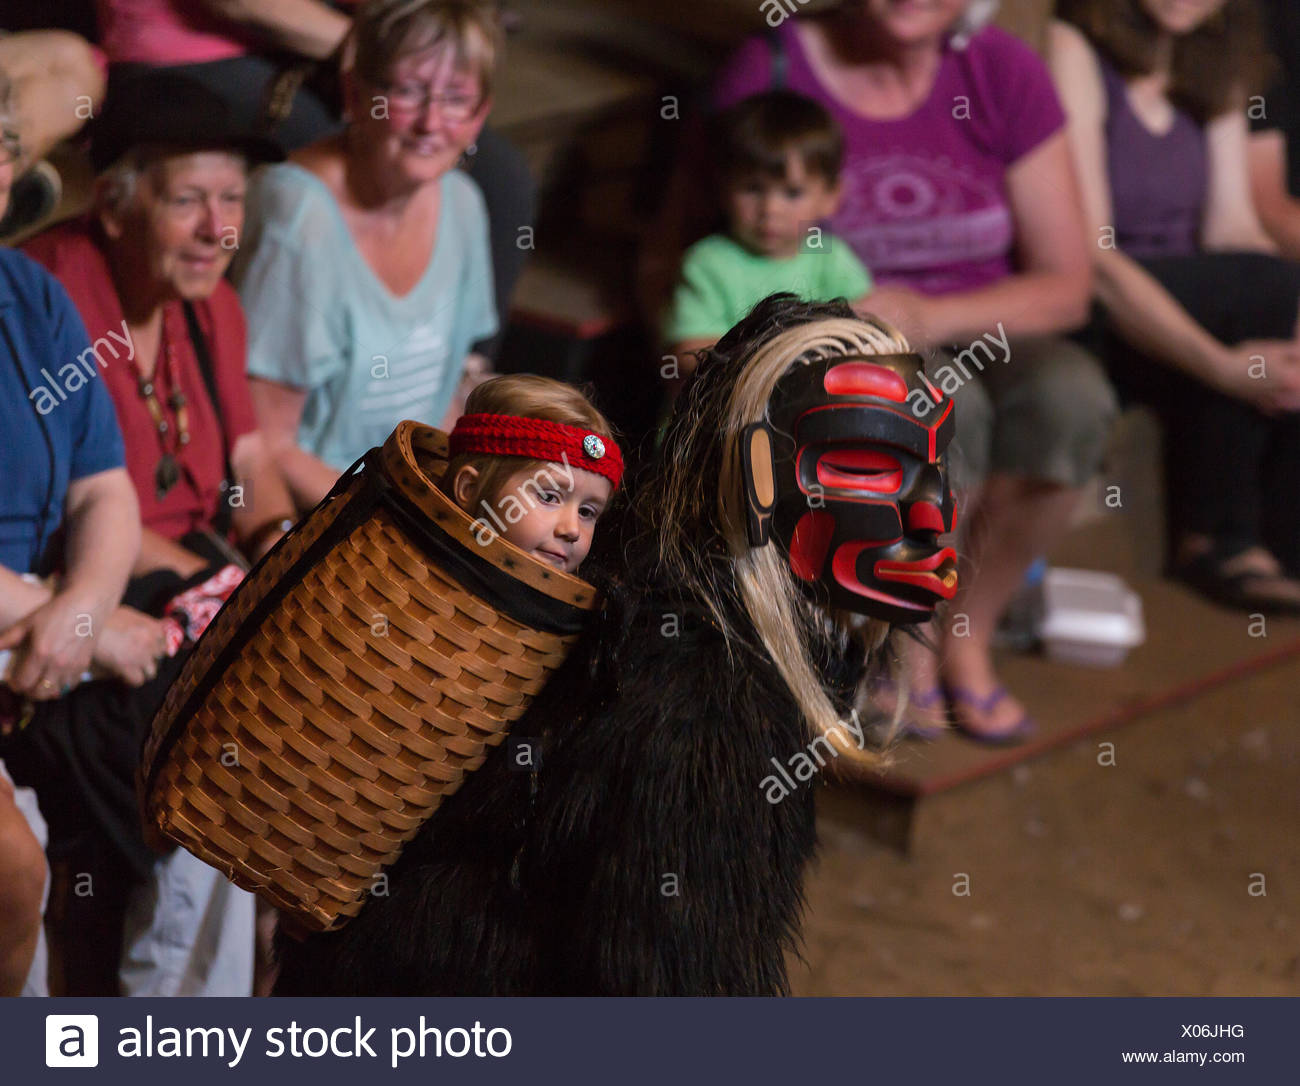 Dzunakwa, Wild woman of the woods and the keeper of children in first nation lore dances for visitors to the Komok's bighouse, Comox, Vancouver Island, British Columbia, Canada. - Stock Image